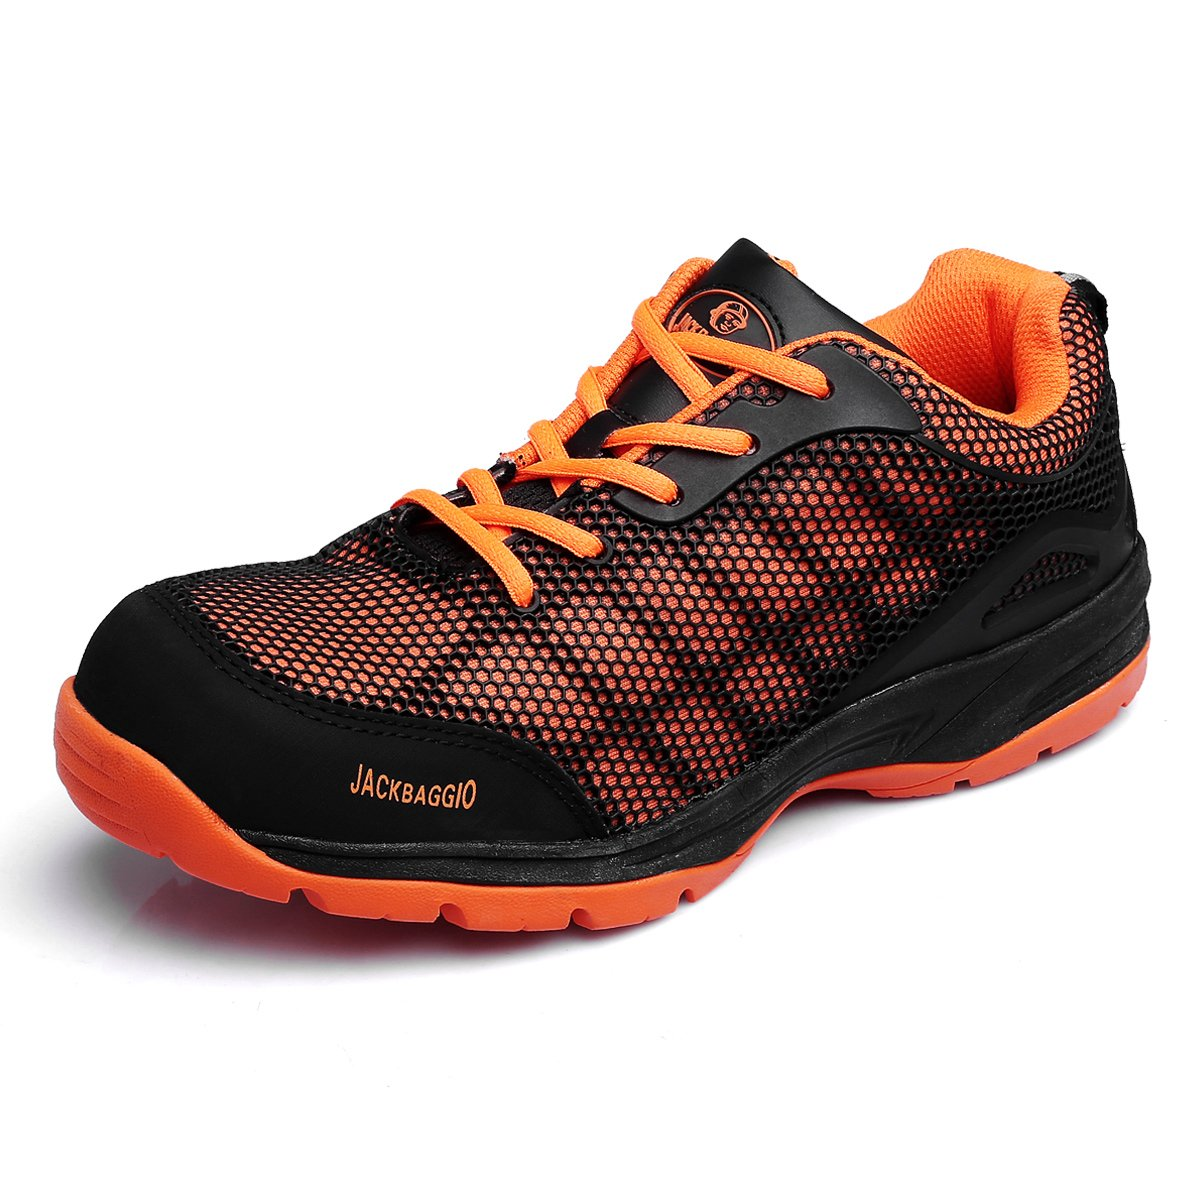 JACKBAGGIO Men's Athletic Steel Toe Breathable Mesh Lightweight Work Shoes 8824 (10.5, Orange)